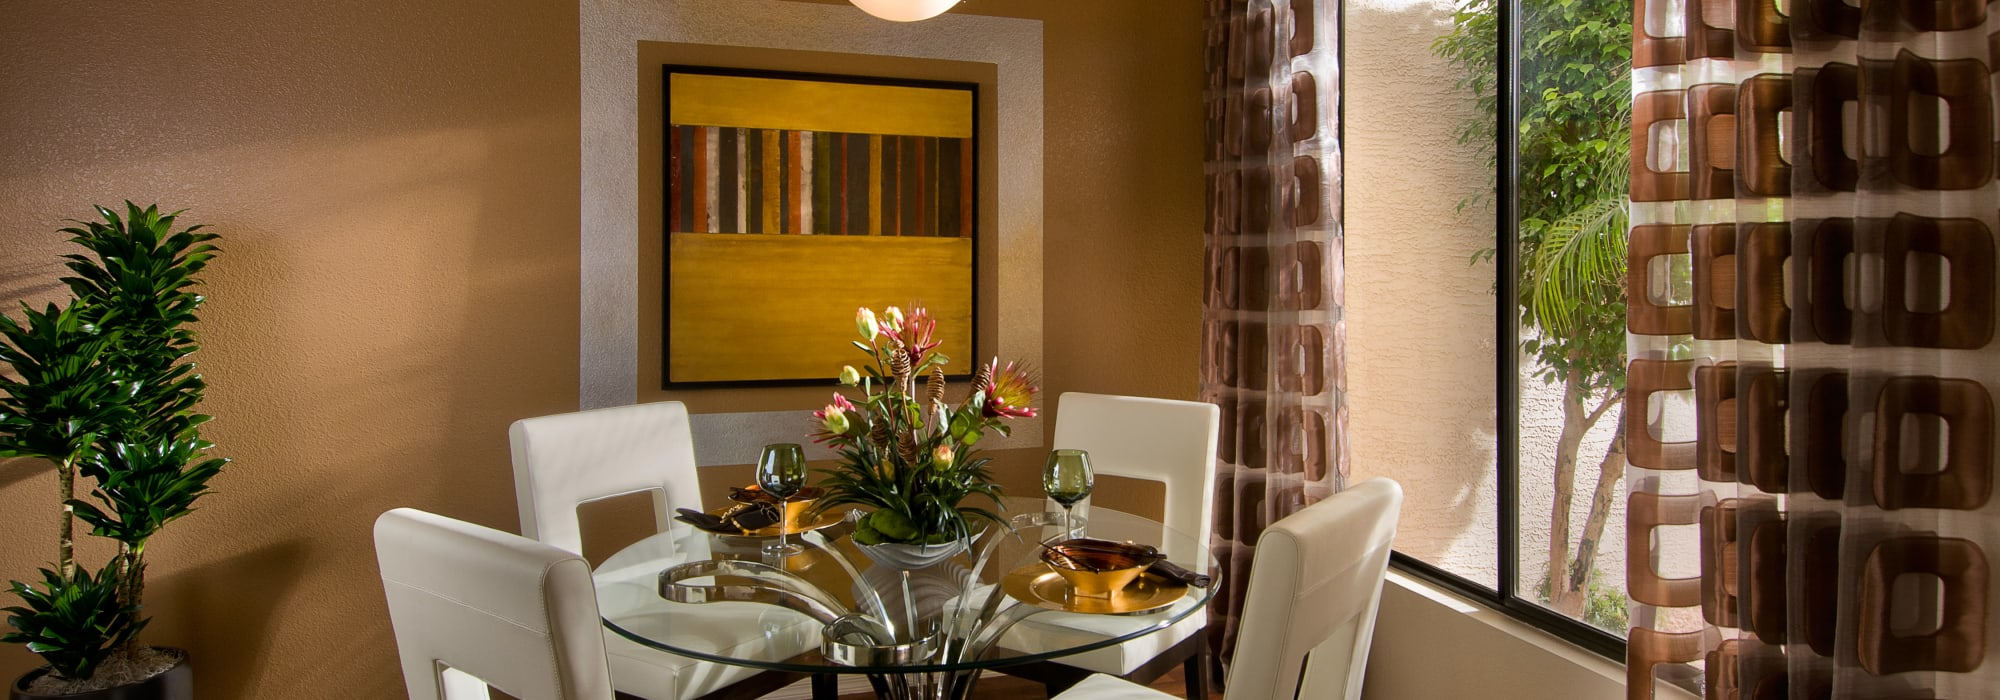 Dining nook with fine furnishings in a model home at San Palmilla in Tempe, Arizona